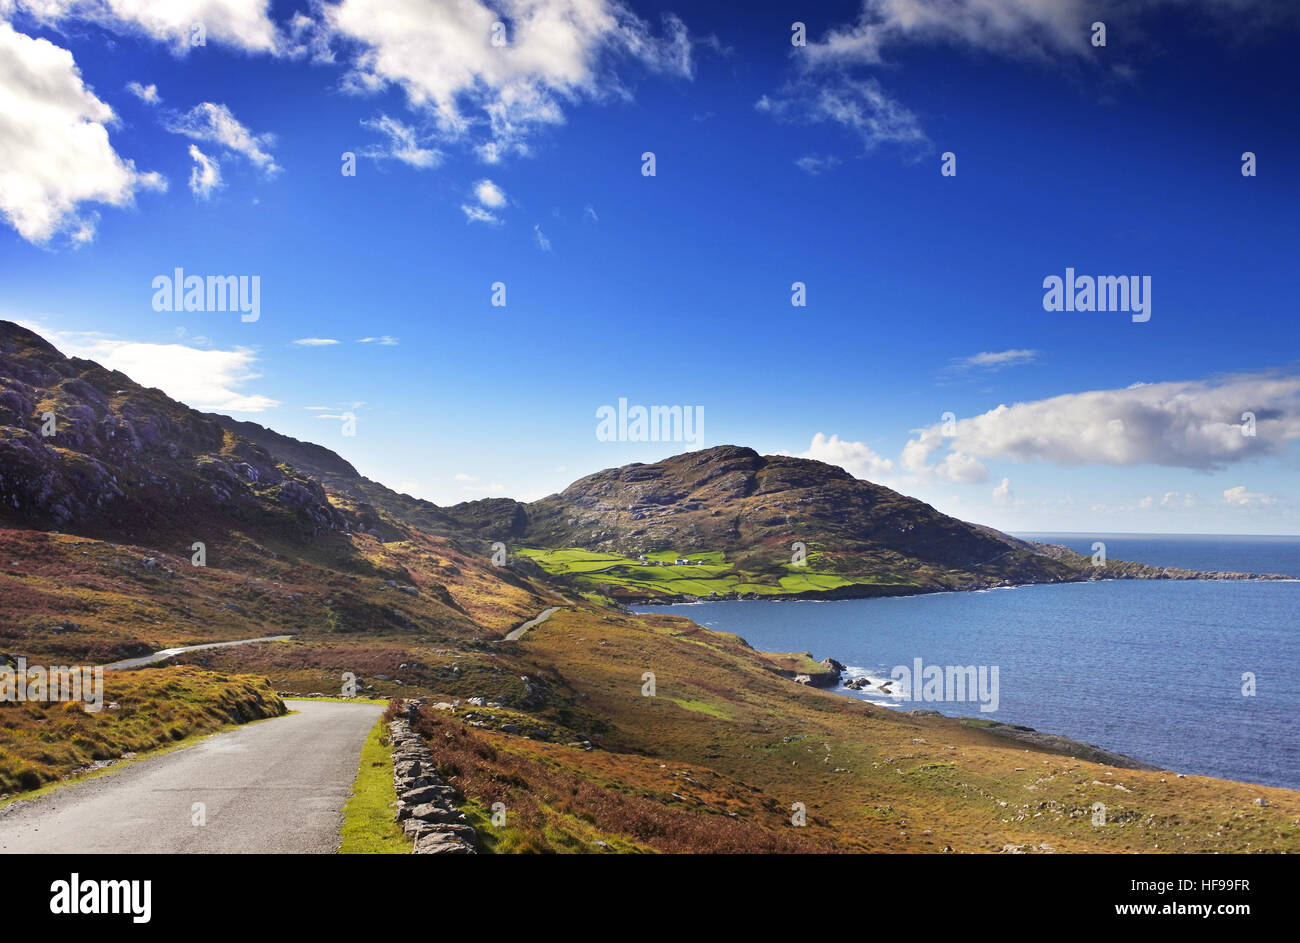 Road, West Coast, Ireland - John Gollop - Stock Image